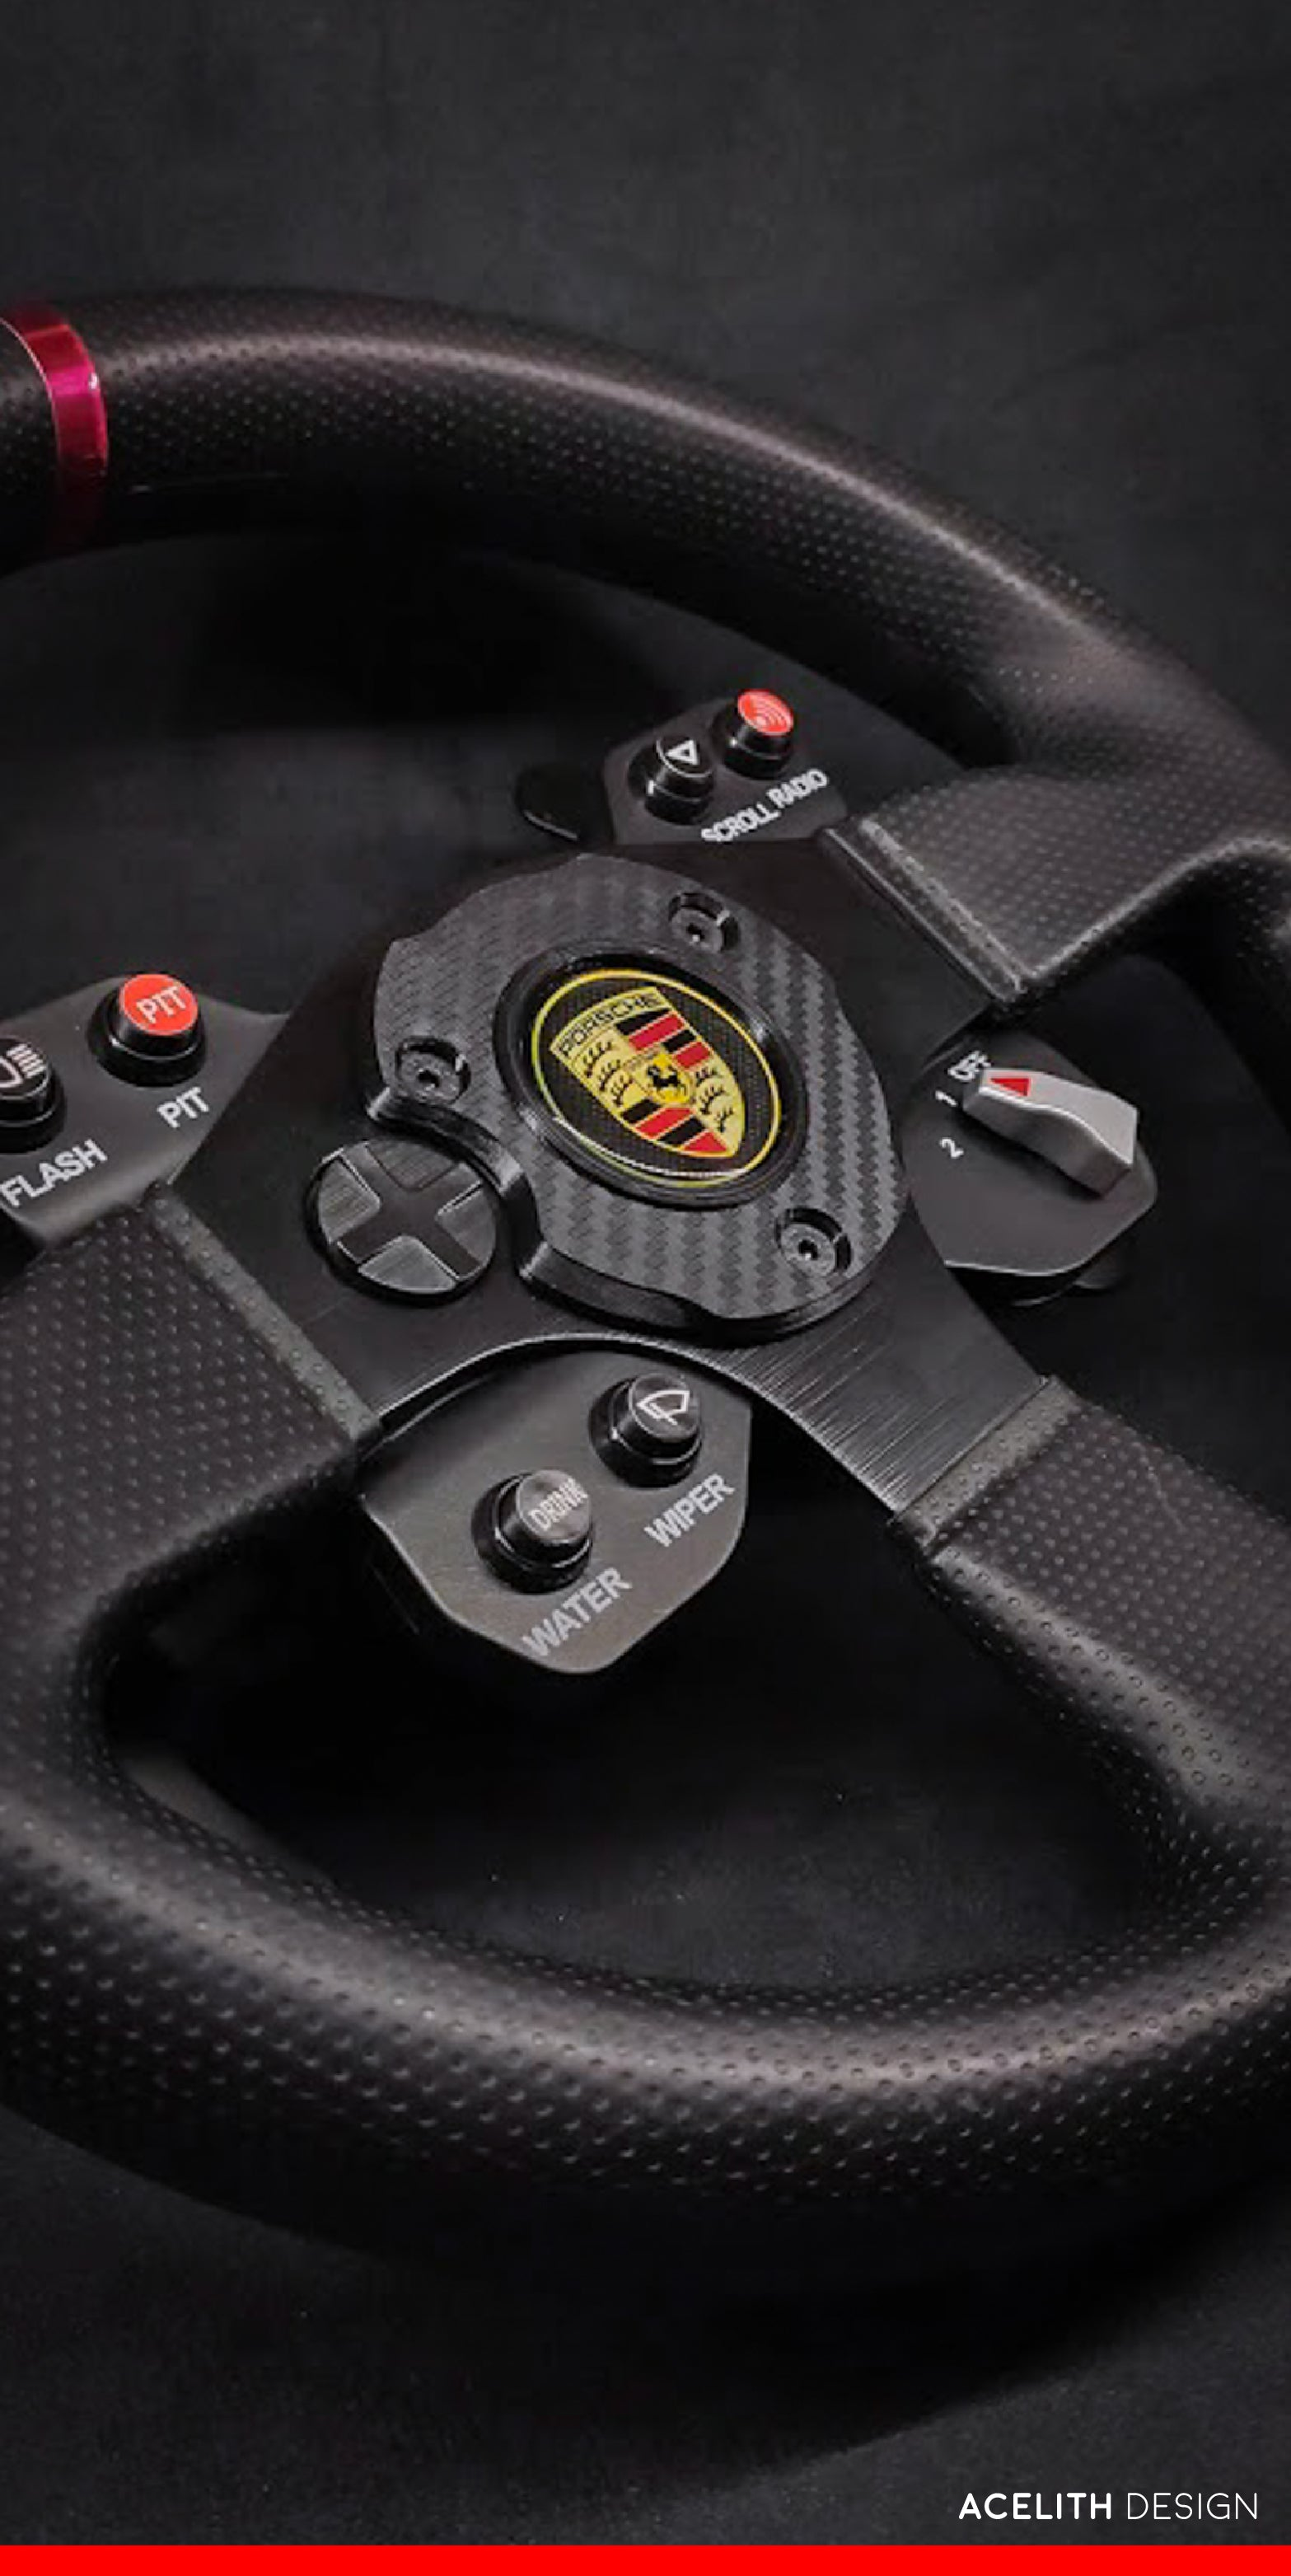 3D Model - Badge\Logo mod for Thrustmaster T300 GTE